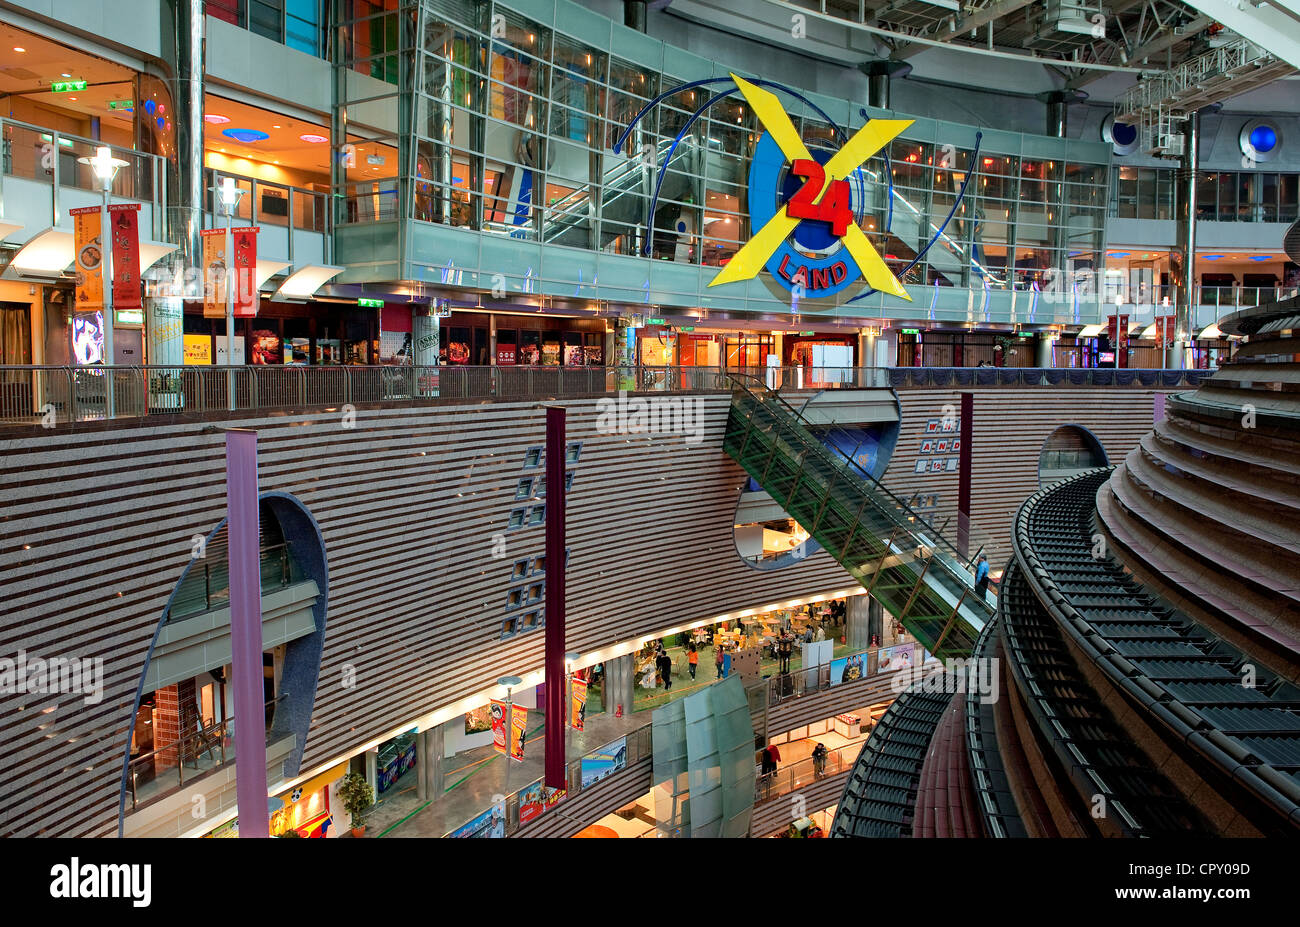 Taiwan, Taipei, Commercial Center Core Pacific City by the architect Jon Jerde - Stock Image